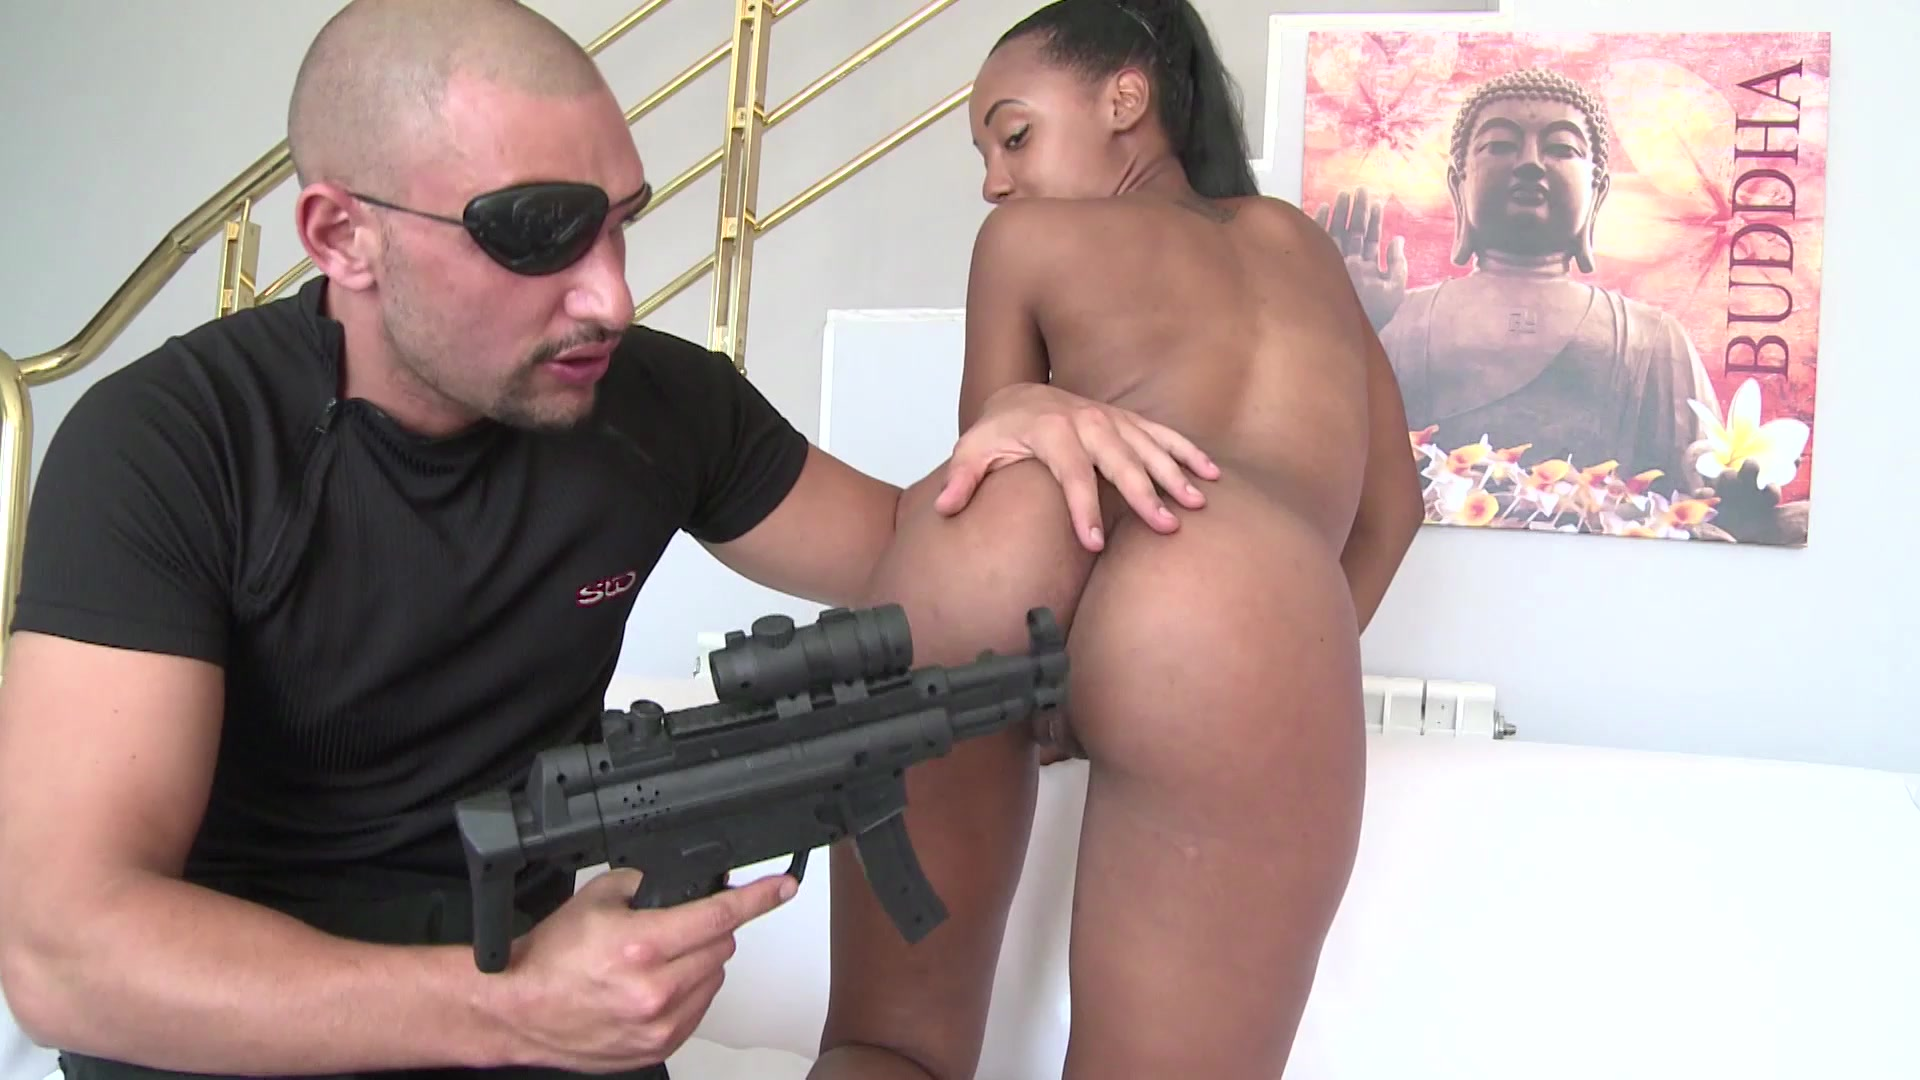 Noemilk Gets Her Black Pussy Stuffed With White Cock Starring: Noemilk Length: 38 min